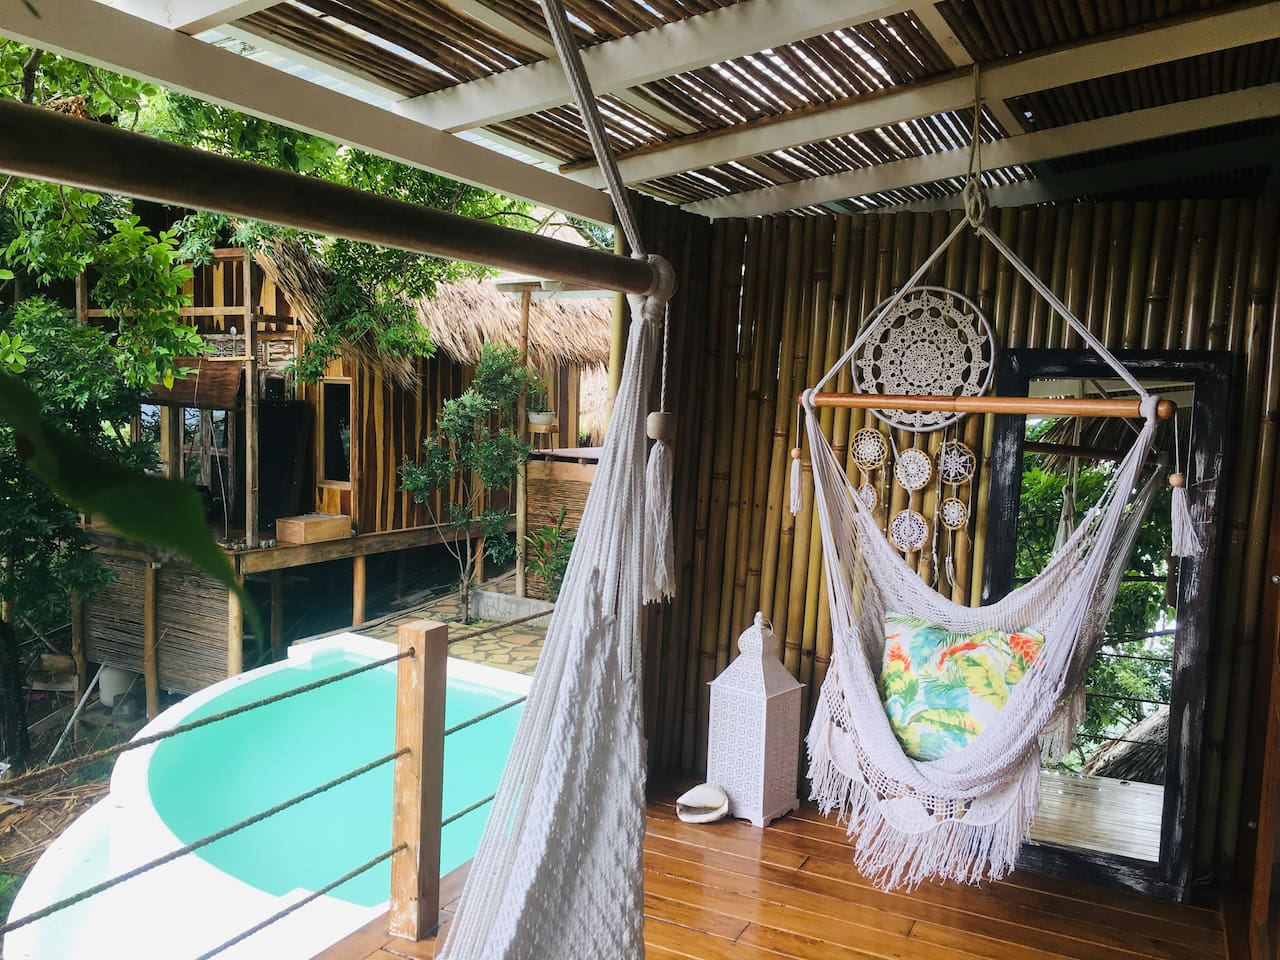 Relaxing hammock days overlooking a turquoise pool & casita Single Fin